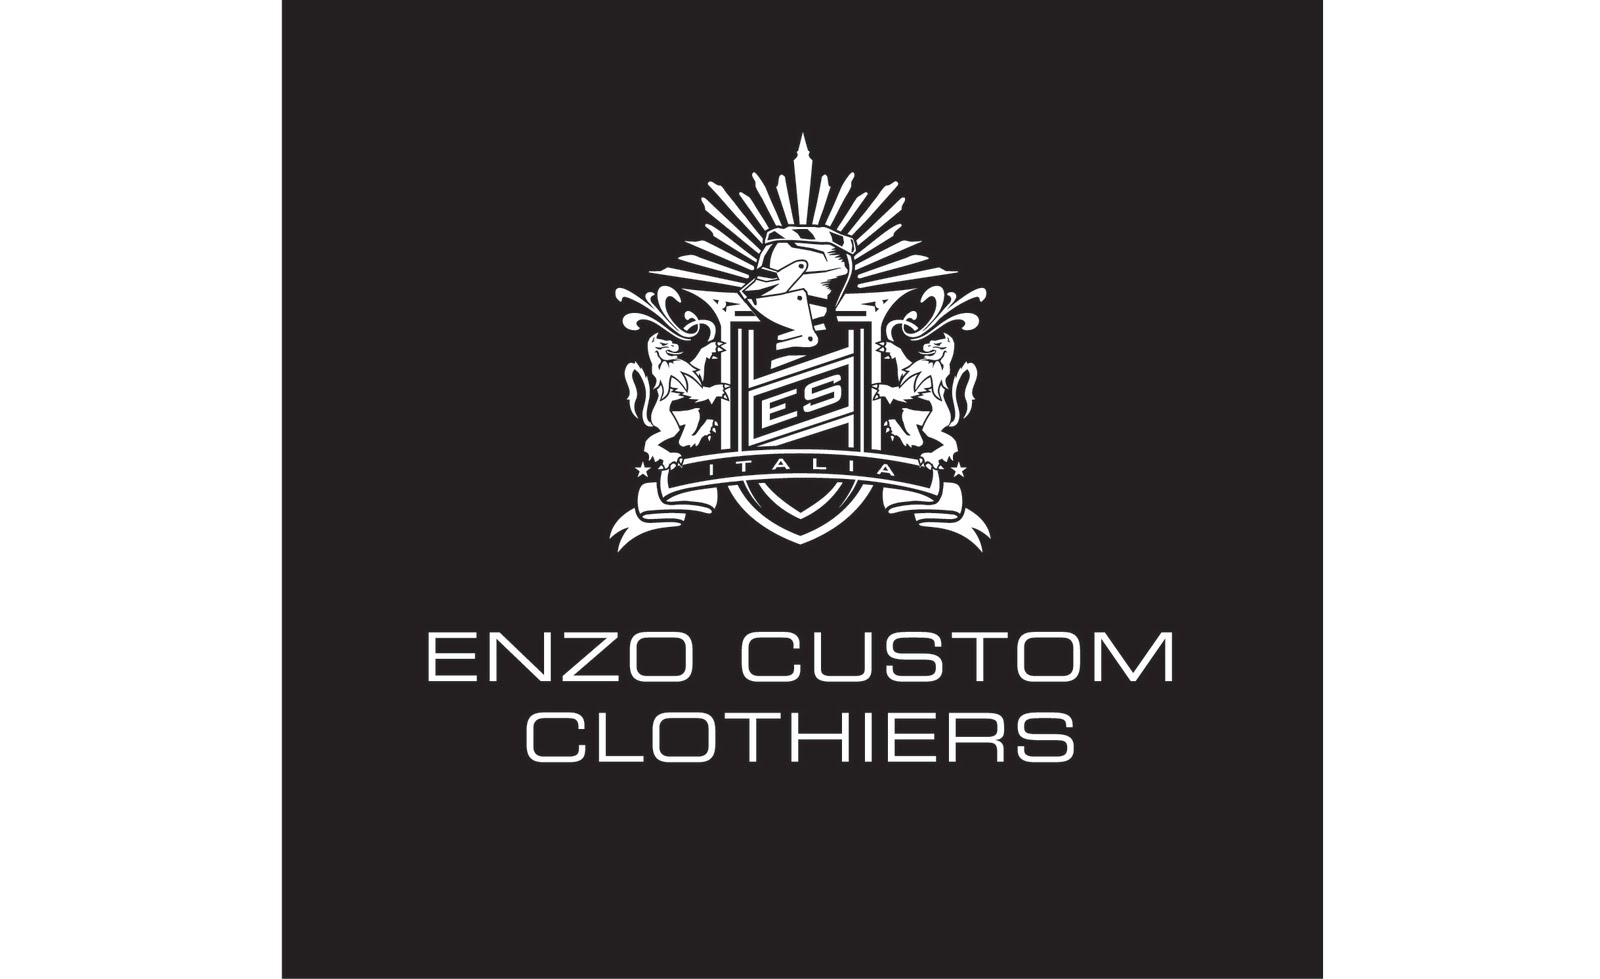 Enzo Custom Clothiers